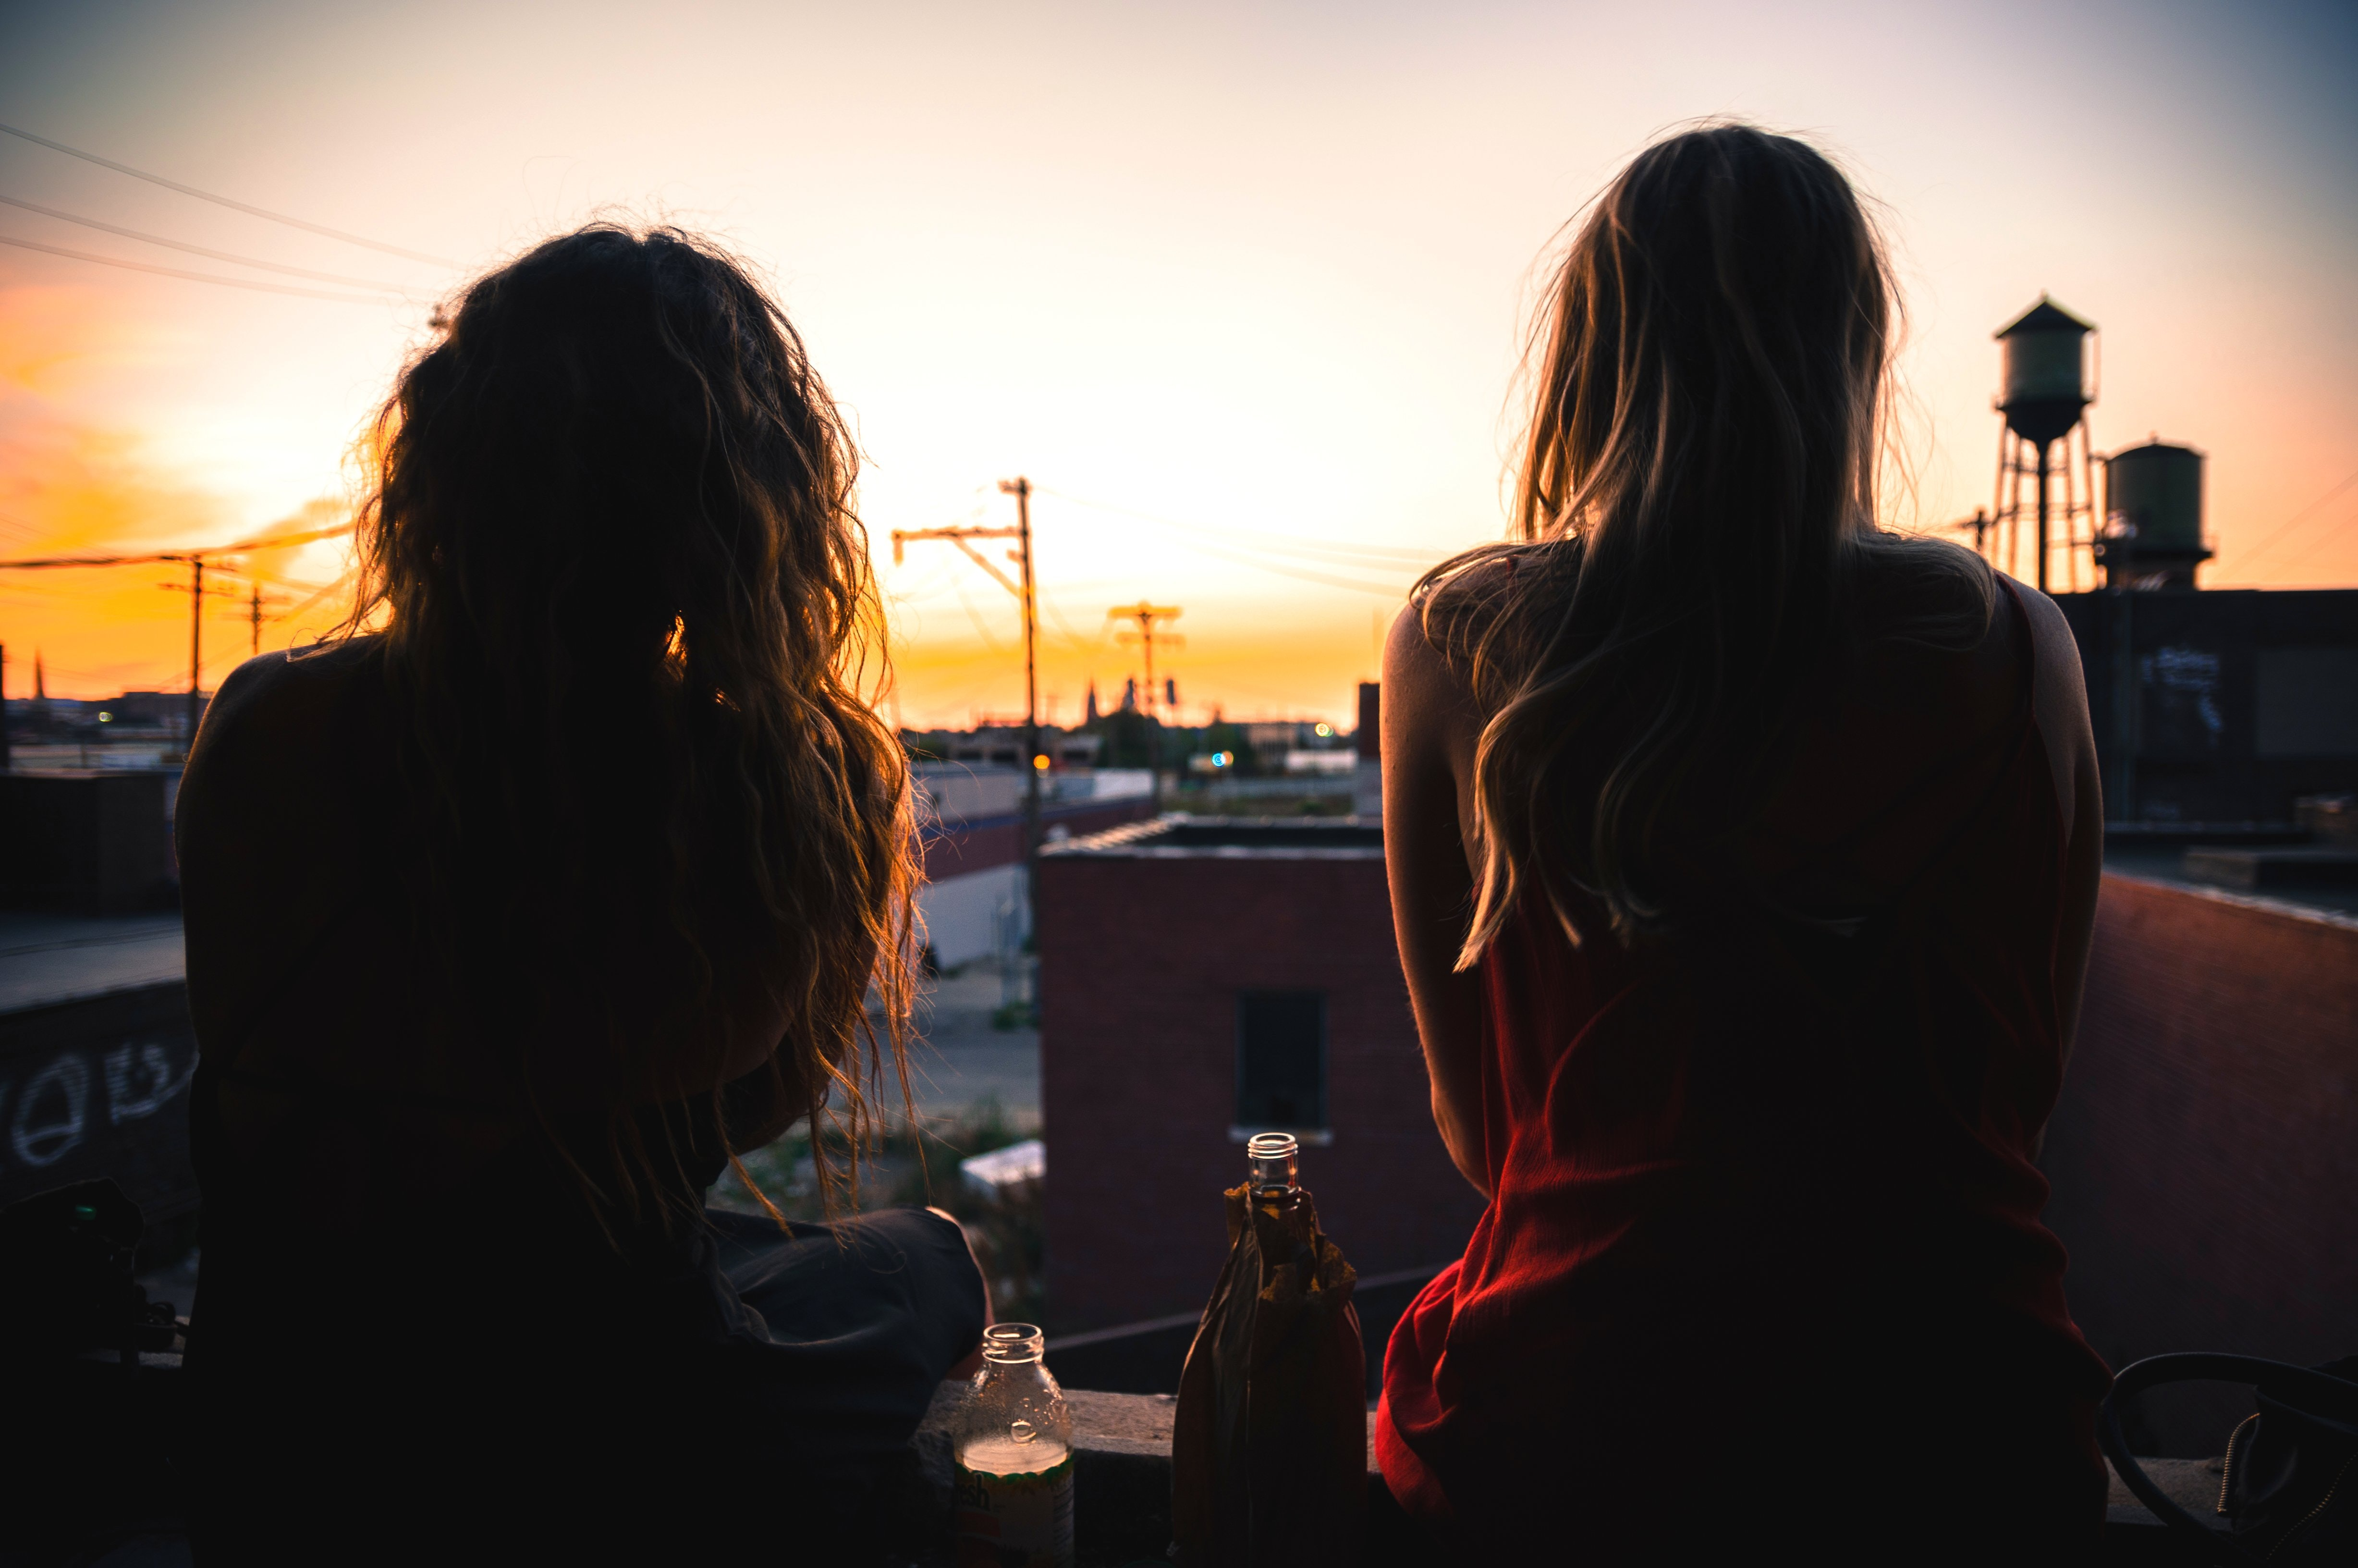 Silhouettes of two women sitting on a rooftop watching the sunset